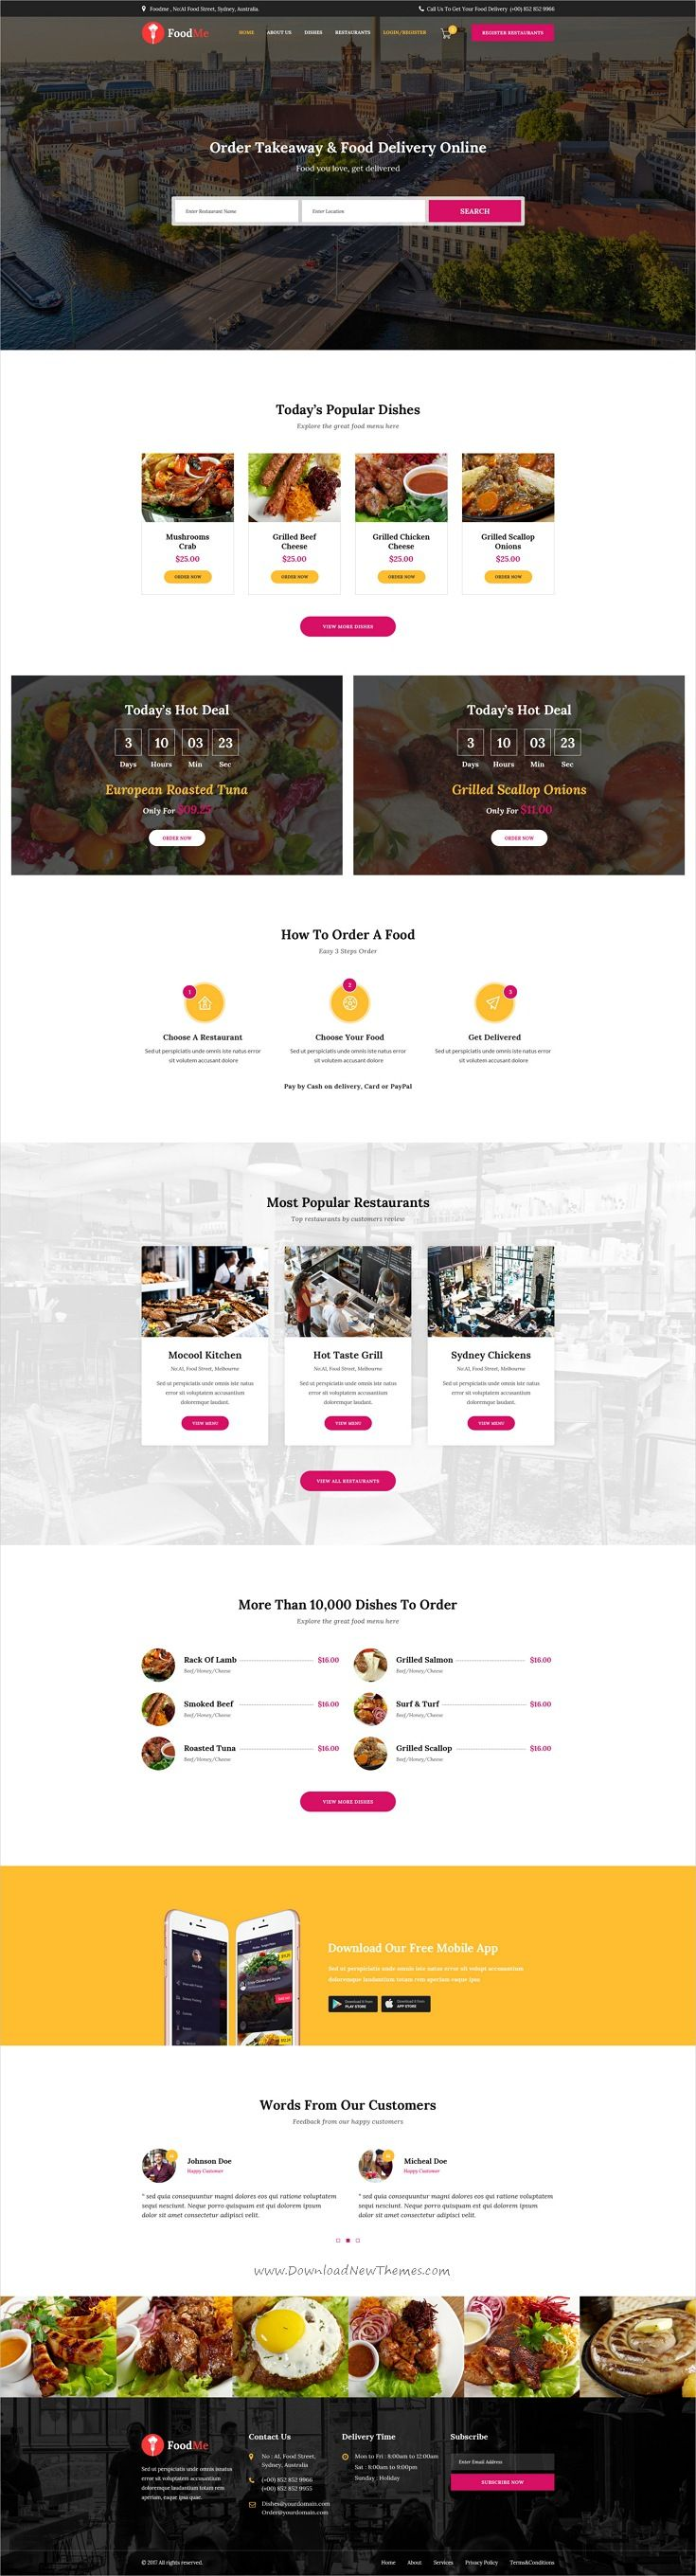 FoodMe-Food Delivery & Food Ordering Psd Template | Plantas